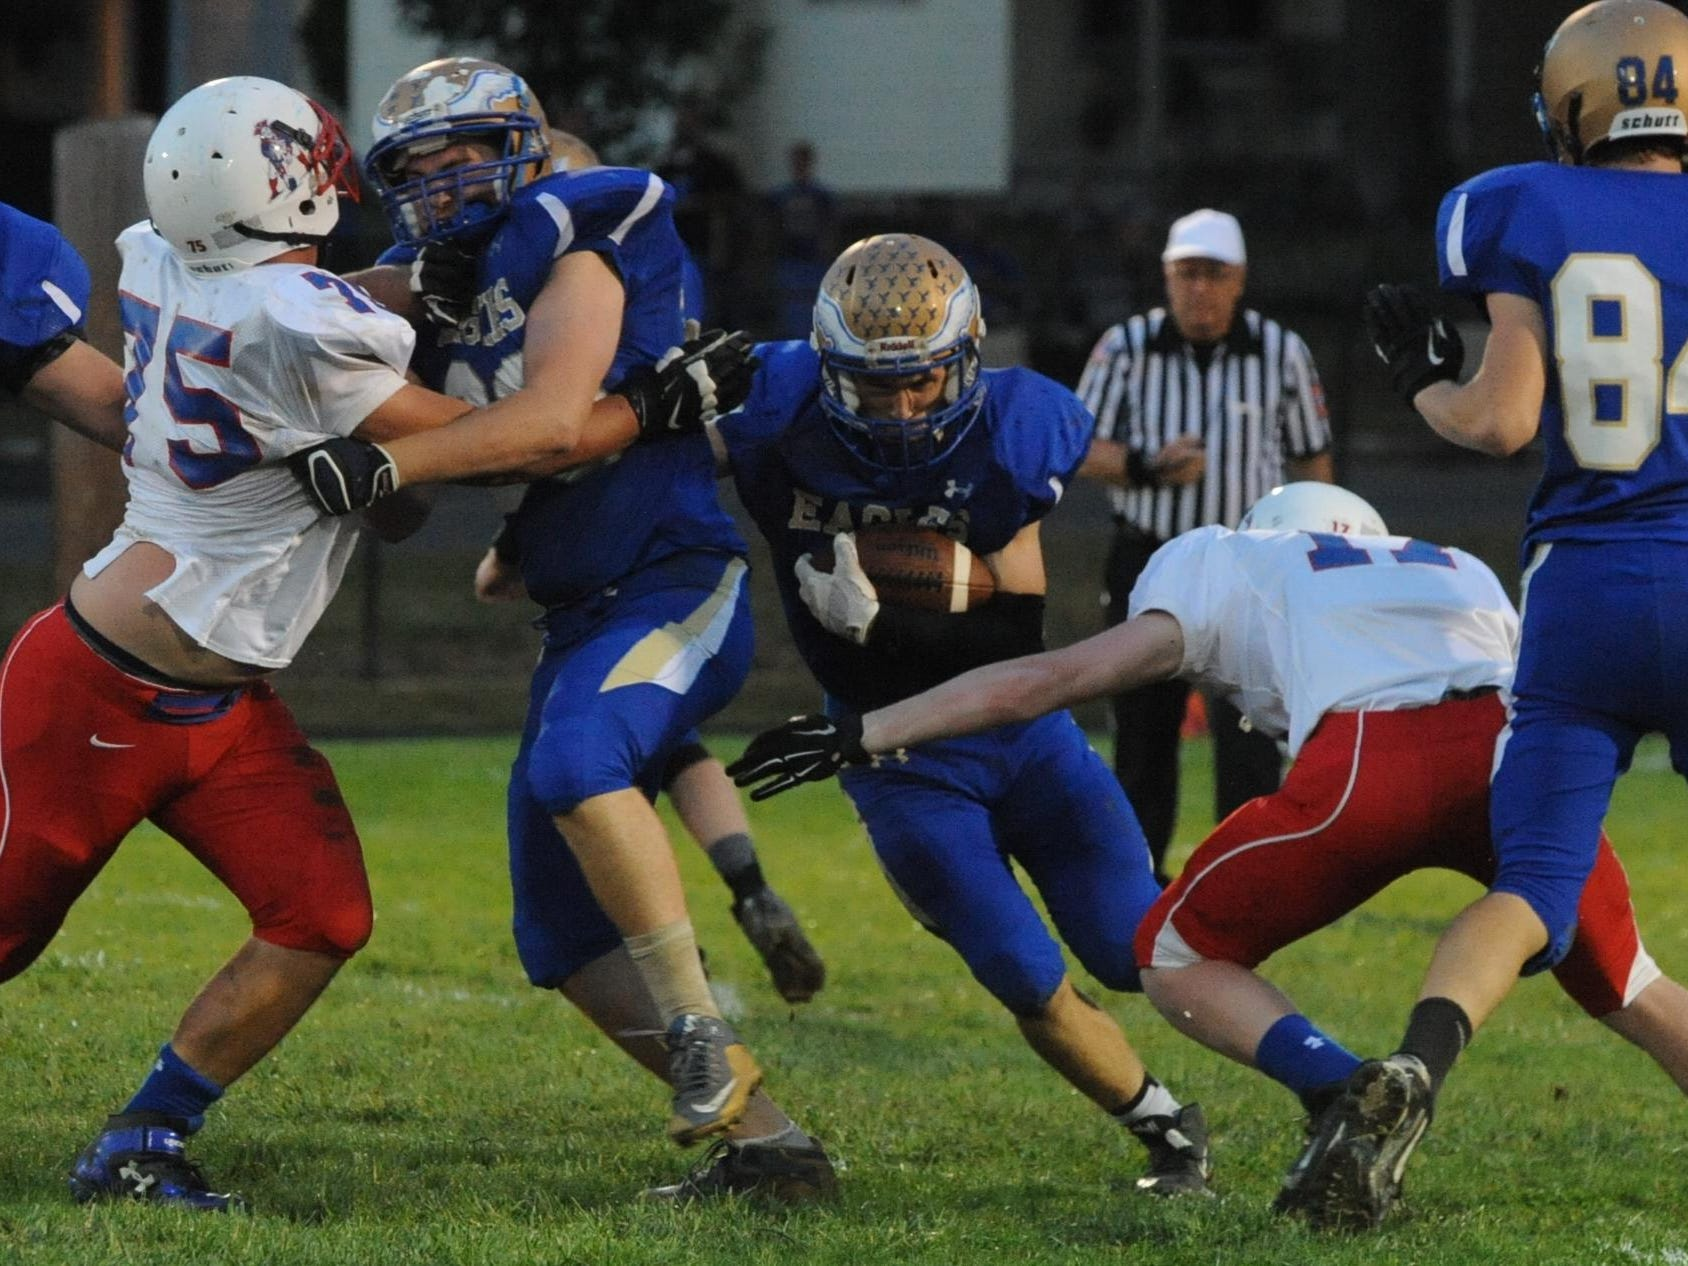 Lincoln's Ben Bertsch looks for running room against Union County during Friday's game in Cambridge City.